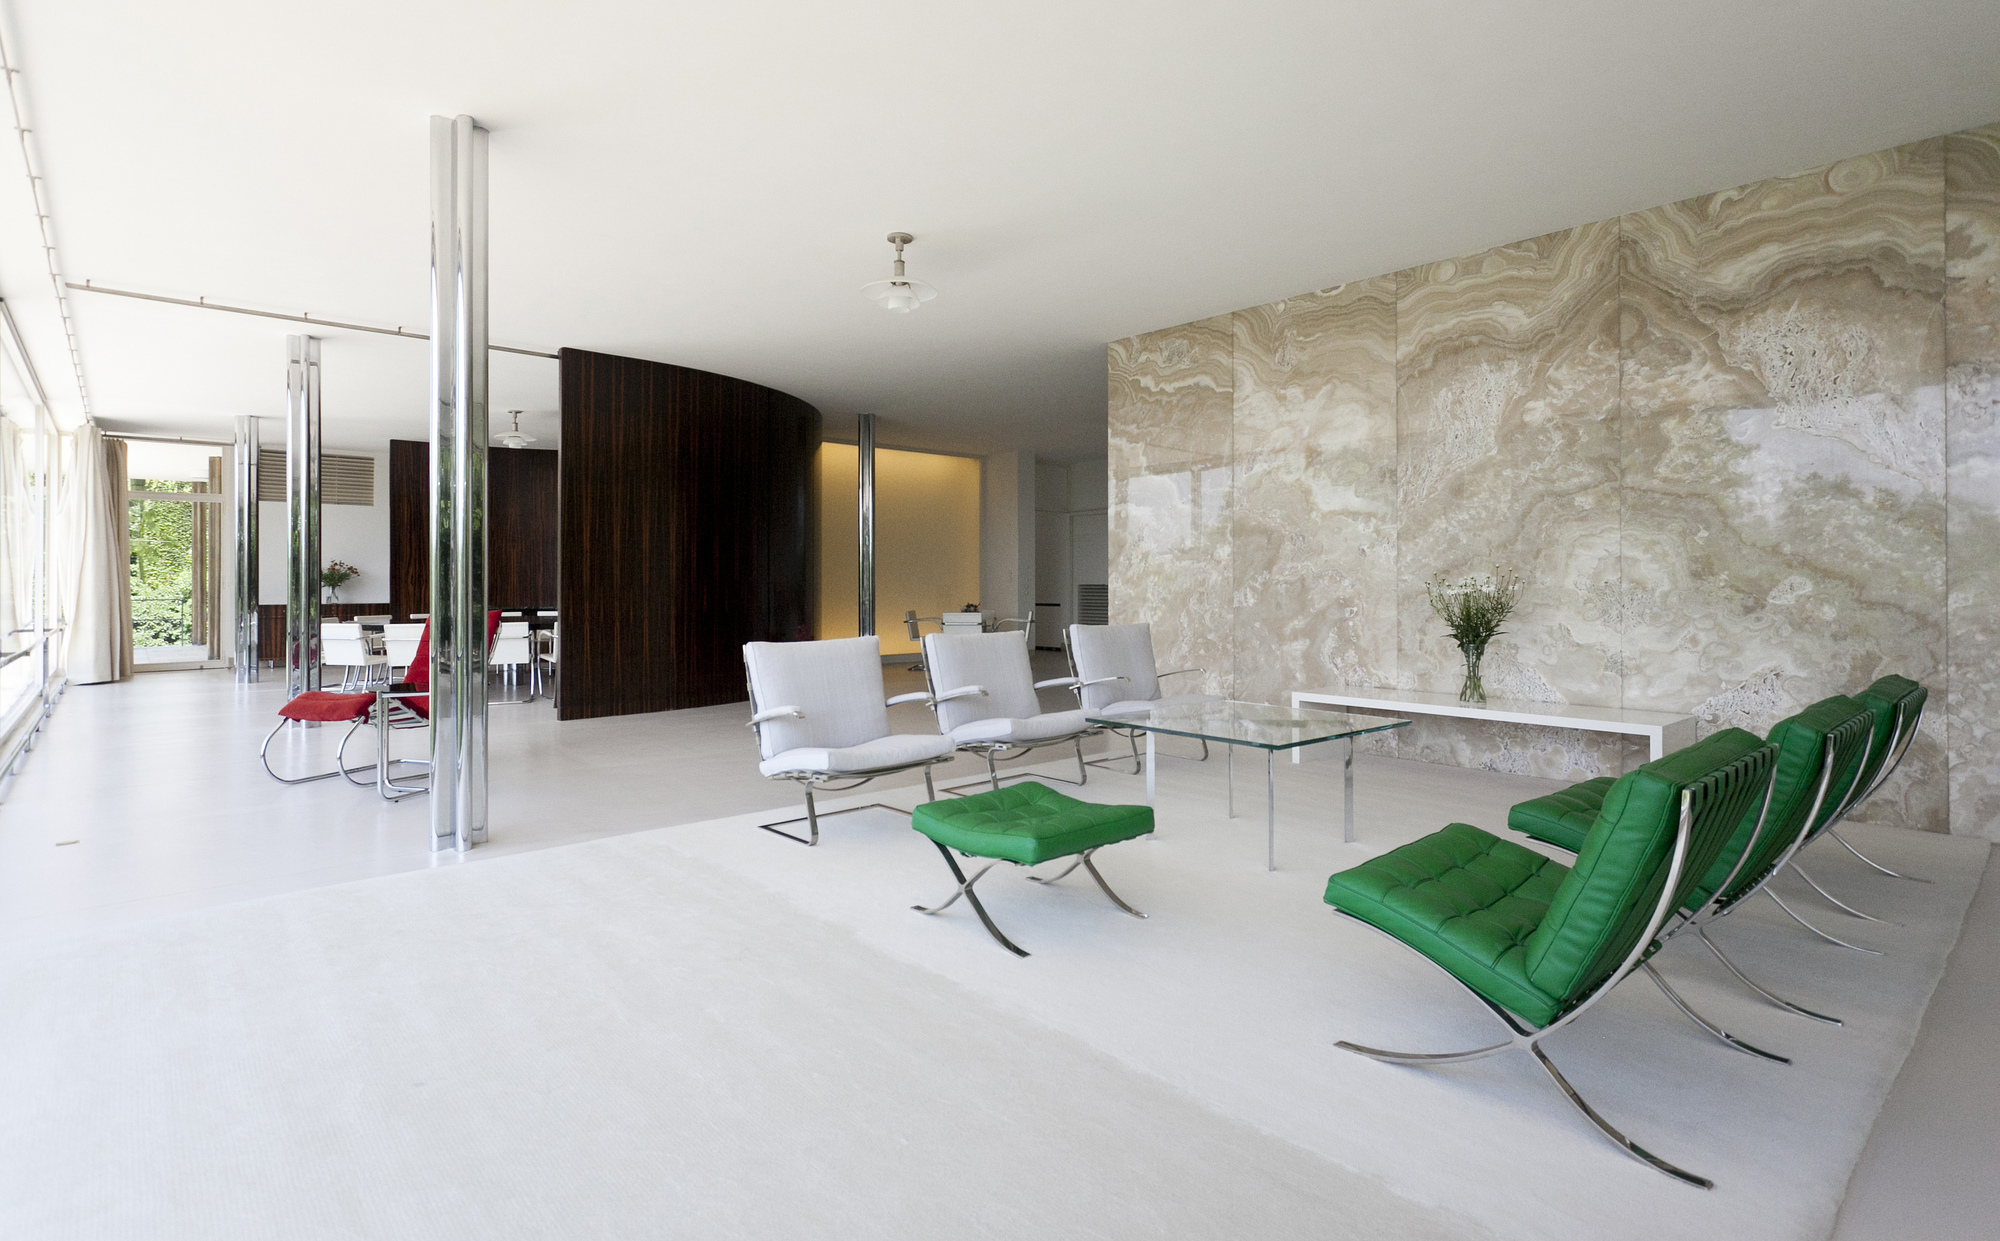 Villa Tugendhat ad classics villa tugendhat mies der rohe archdaily